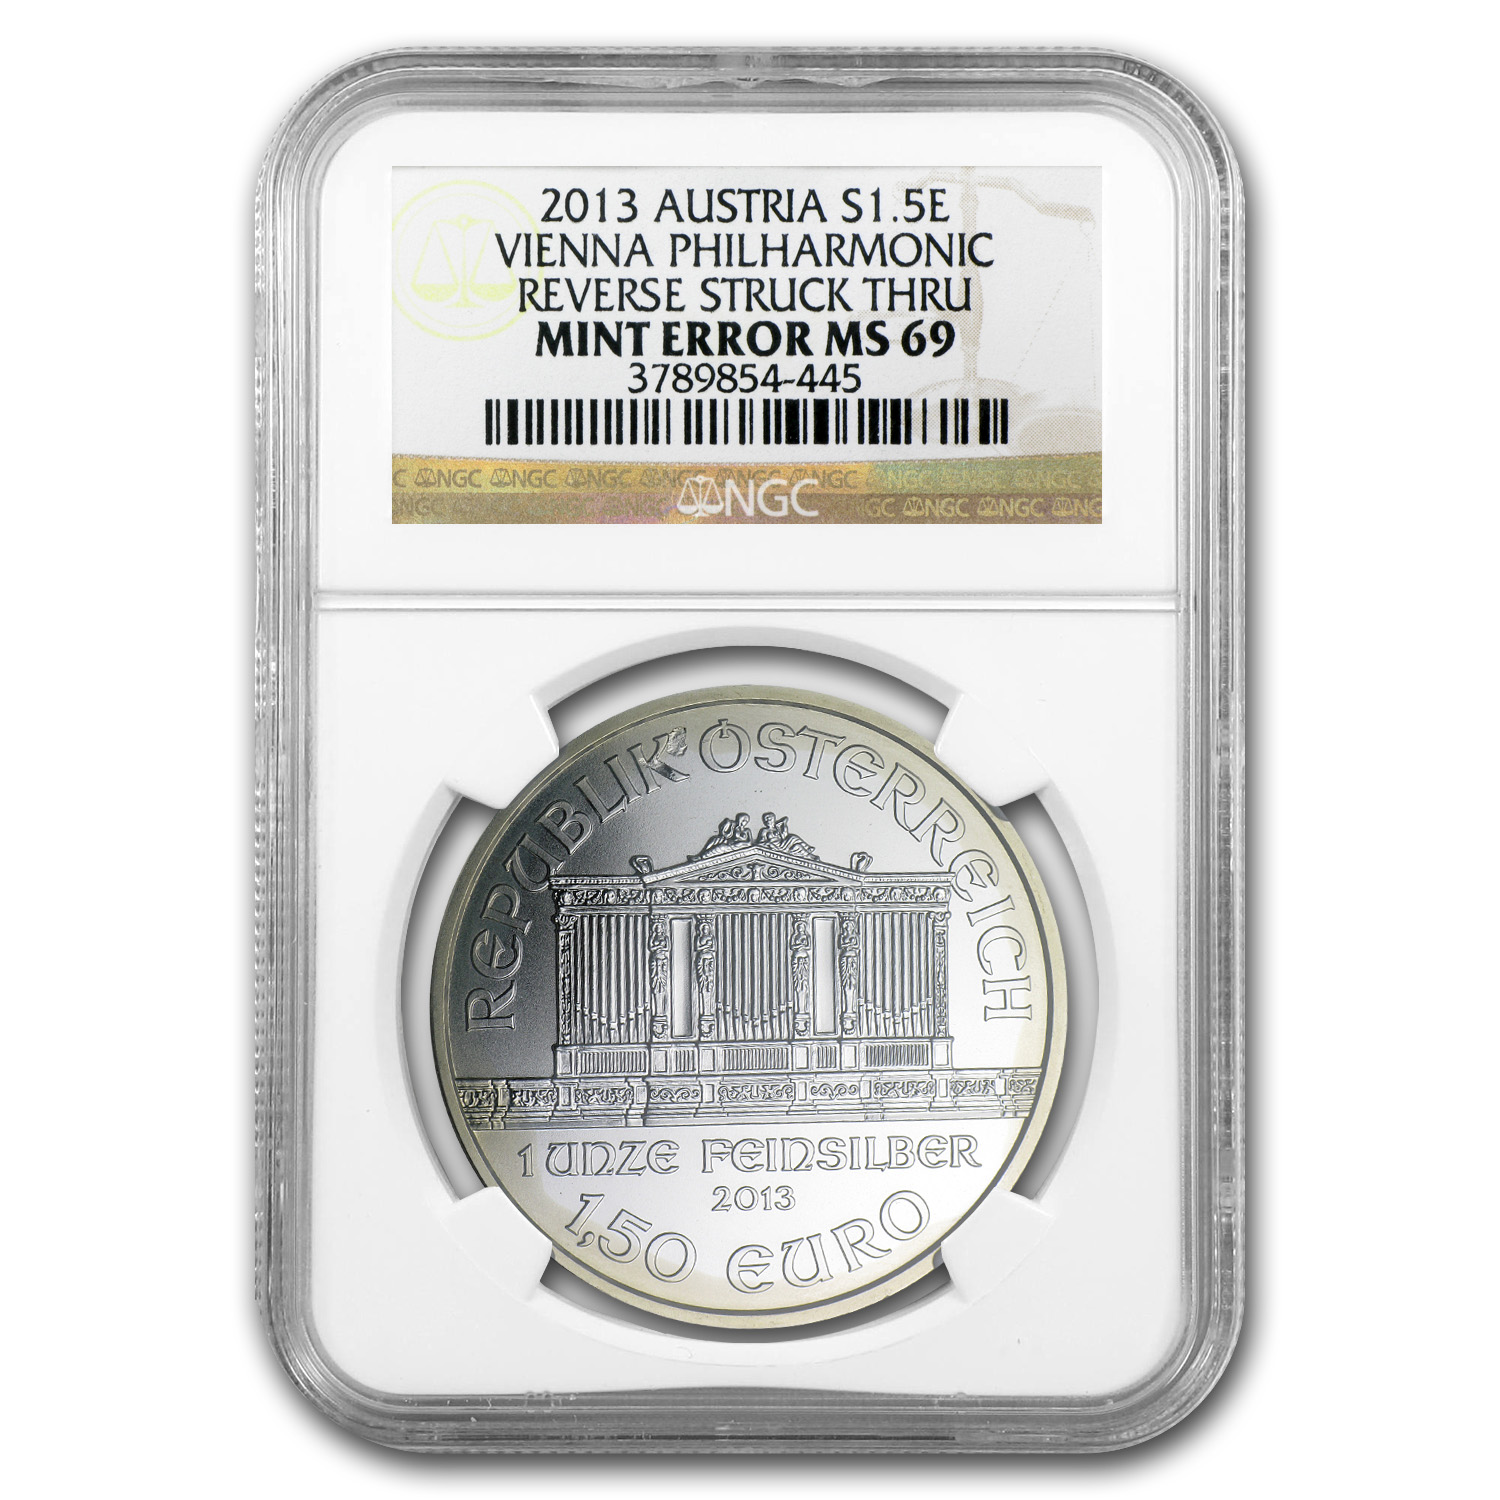 2013 Austria 1 oz Silver Philharmonic MS-69 NGC (Mint Error)